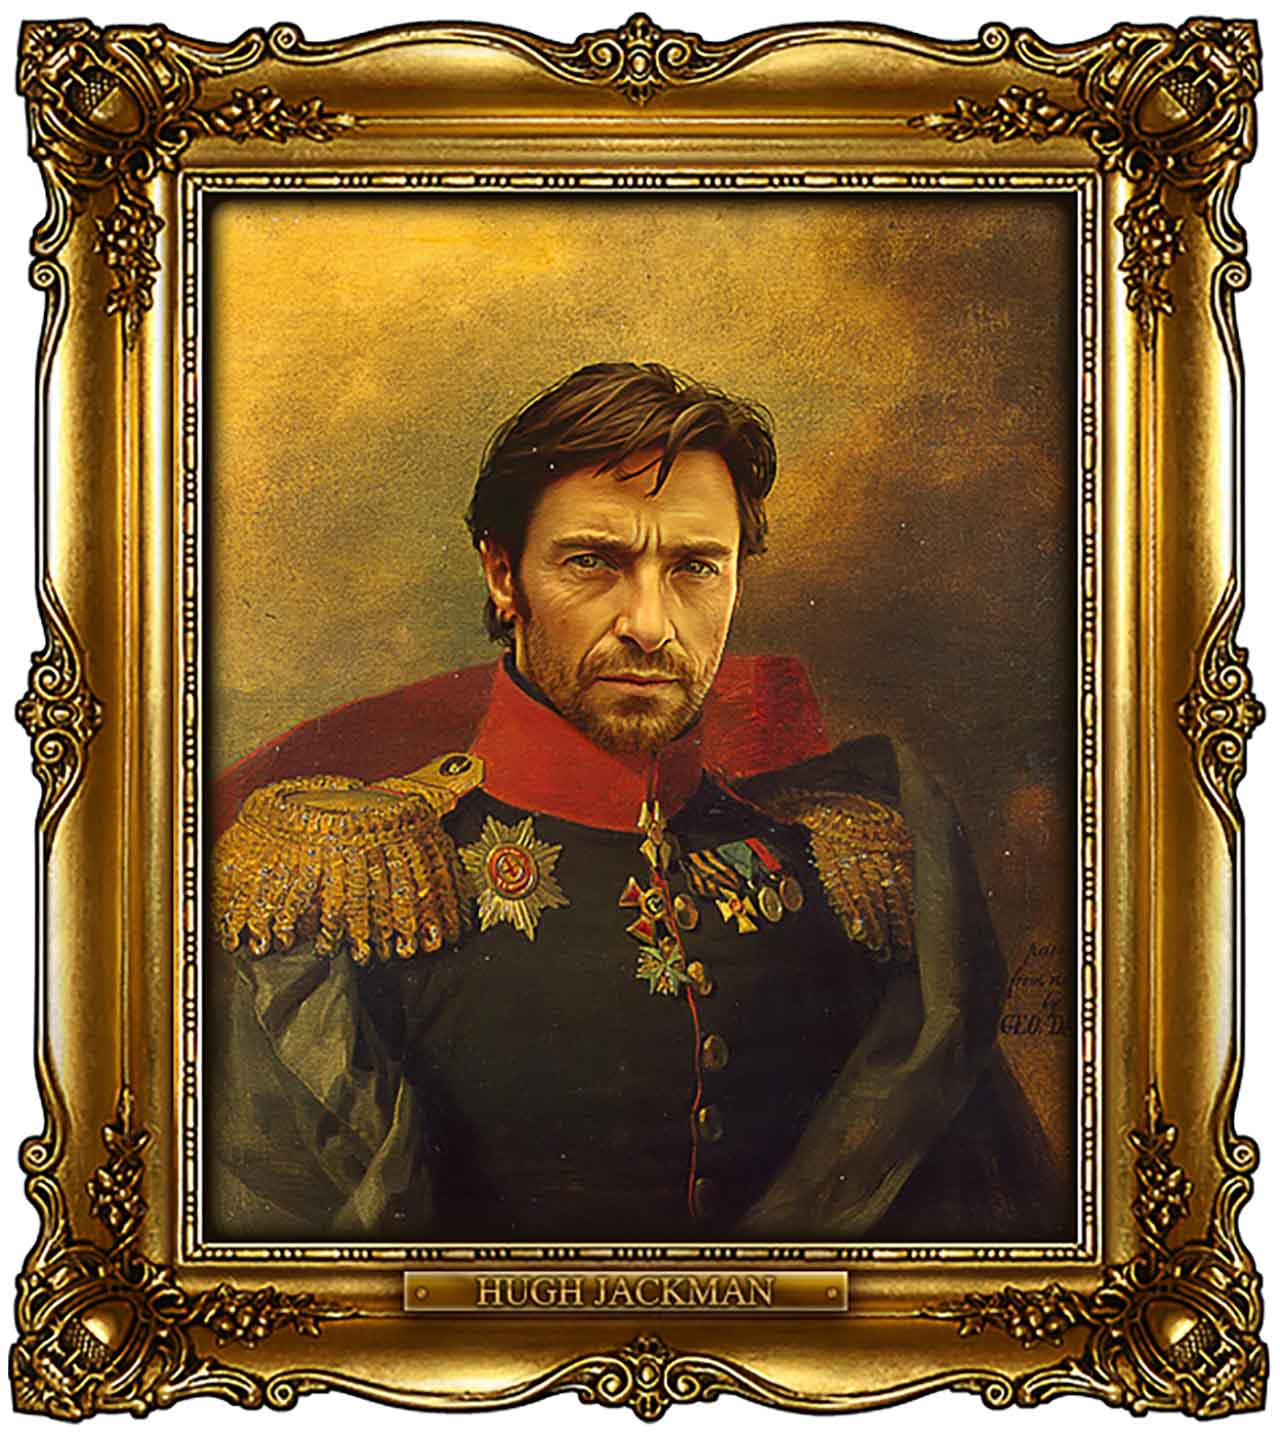 Artist Turns Famous Actors Into Russian Generals - Hugh Jackman